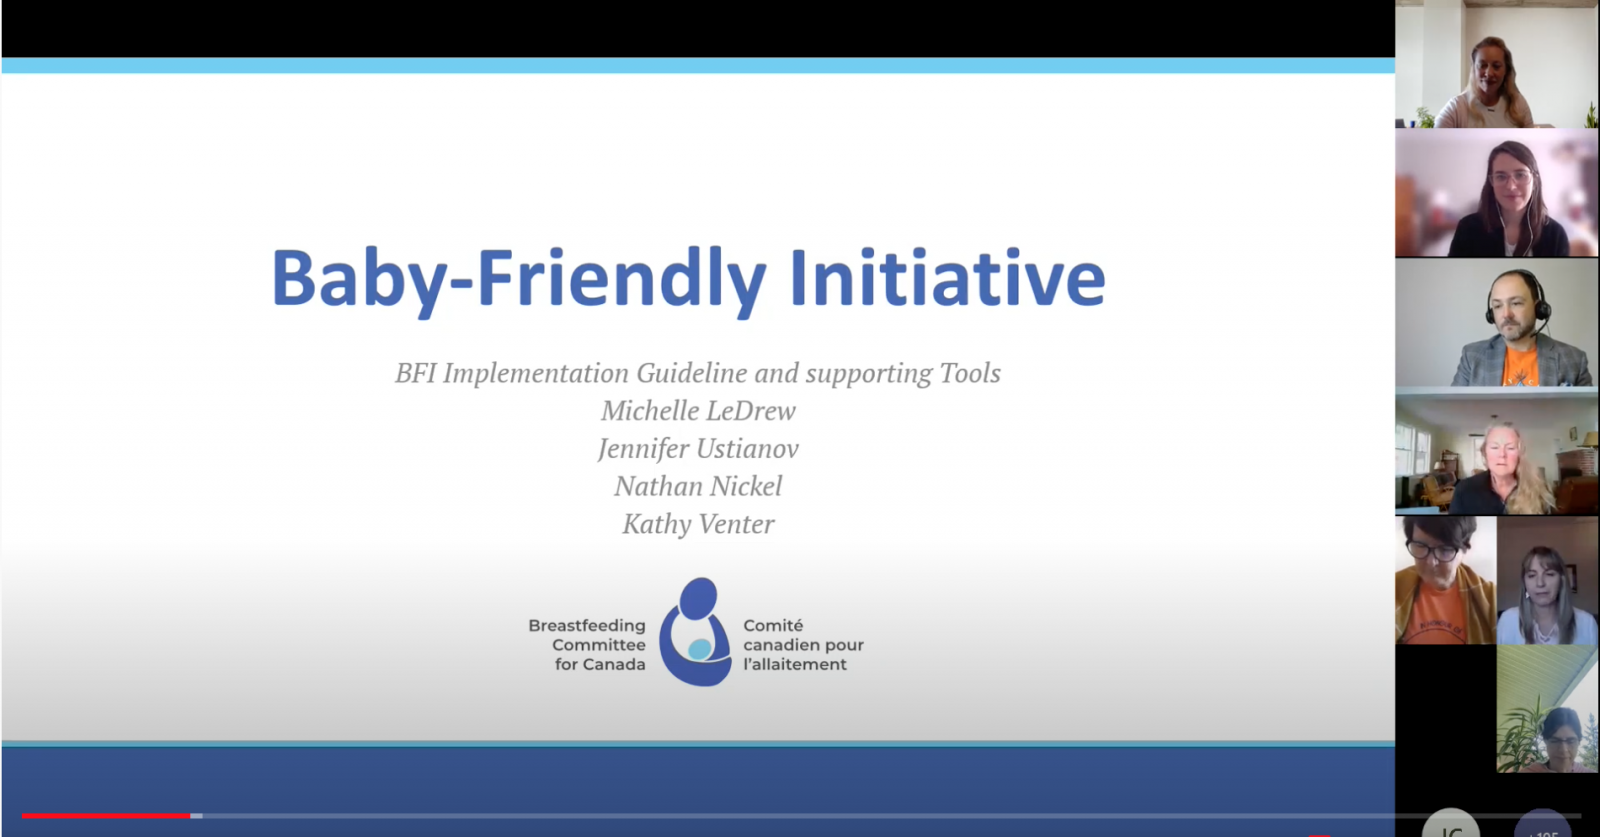 BFI Implementation Guideline and Supporting Tools 2021